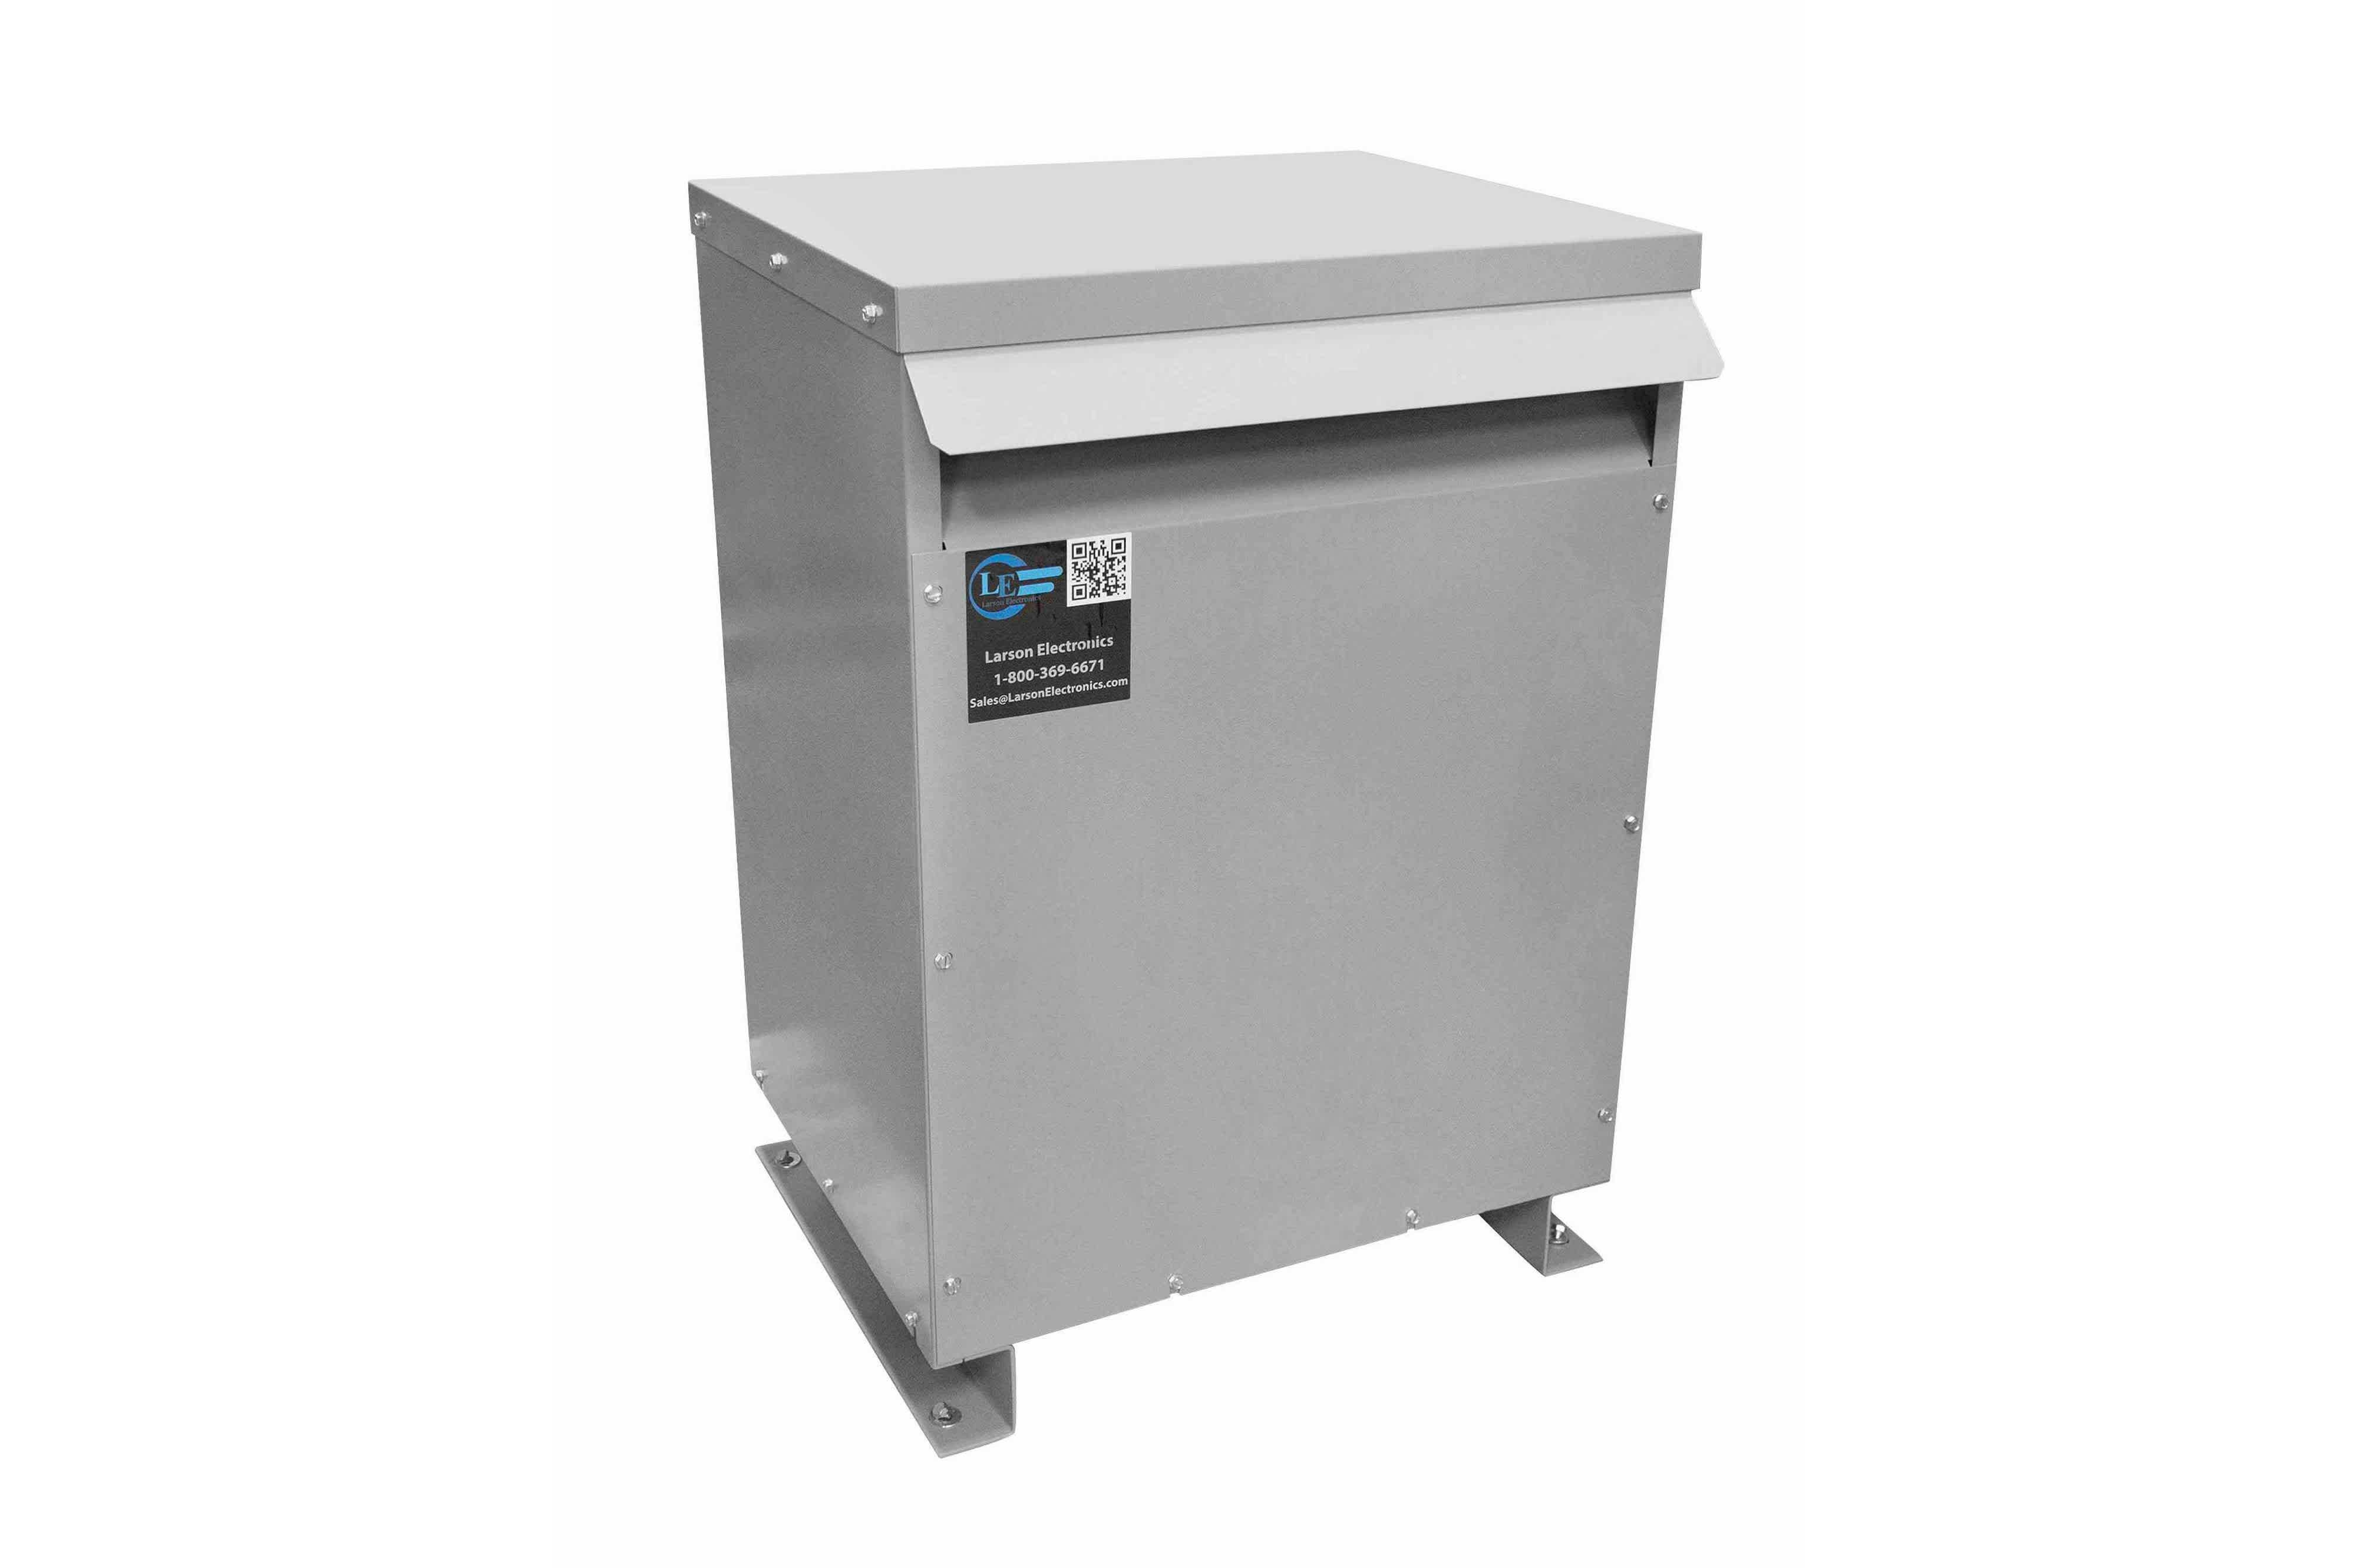 14 kVA 3PH Isolation Transformer, 575V Wye Primary, 240V Delta Secondary, N3R, Ventilated, 60 Hz